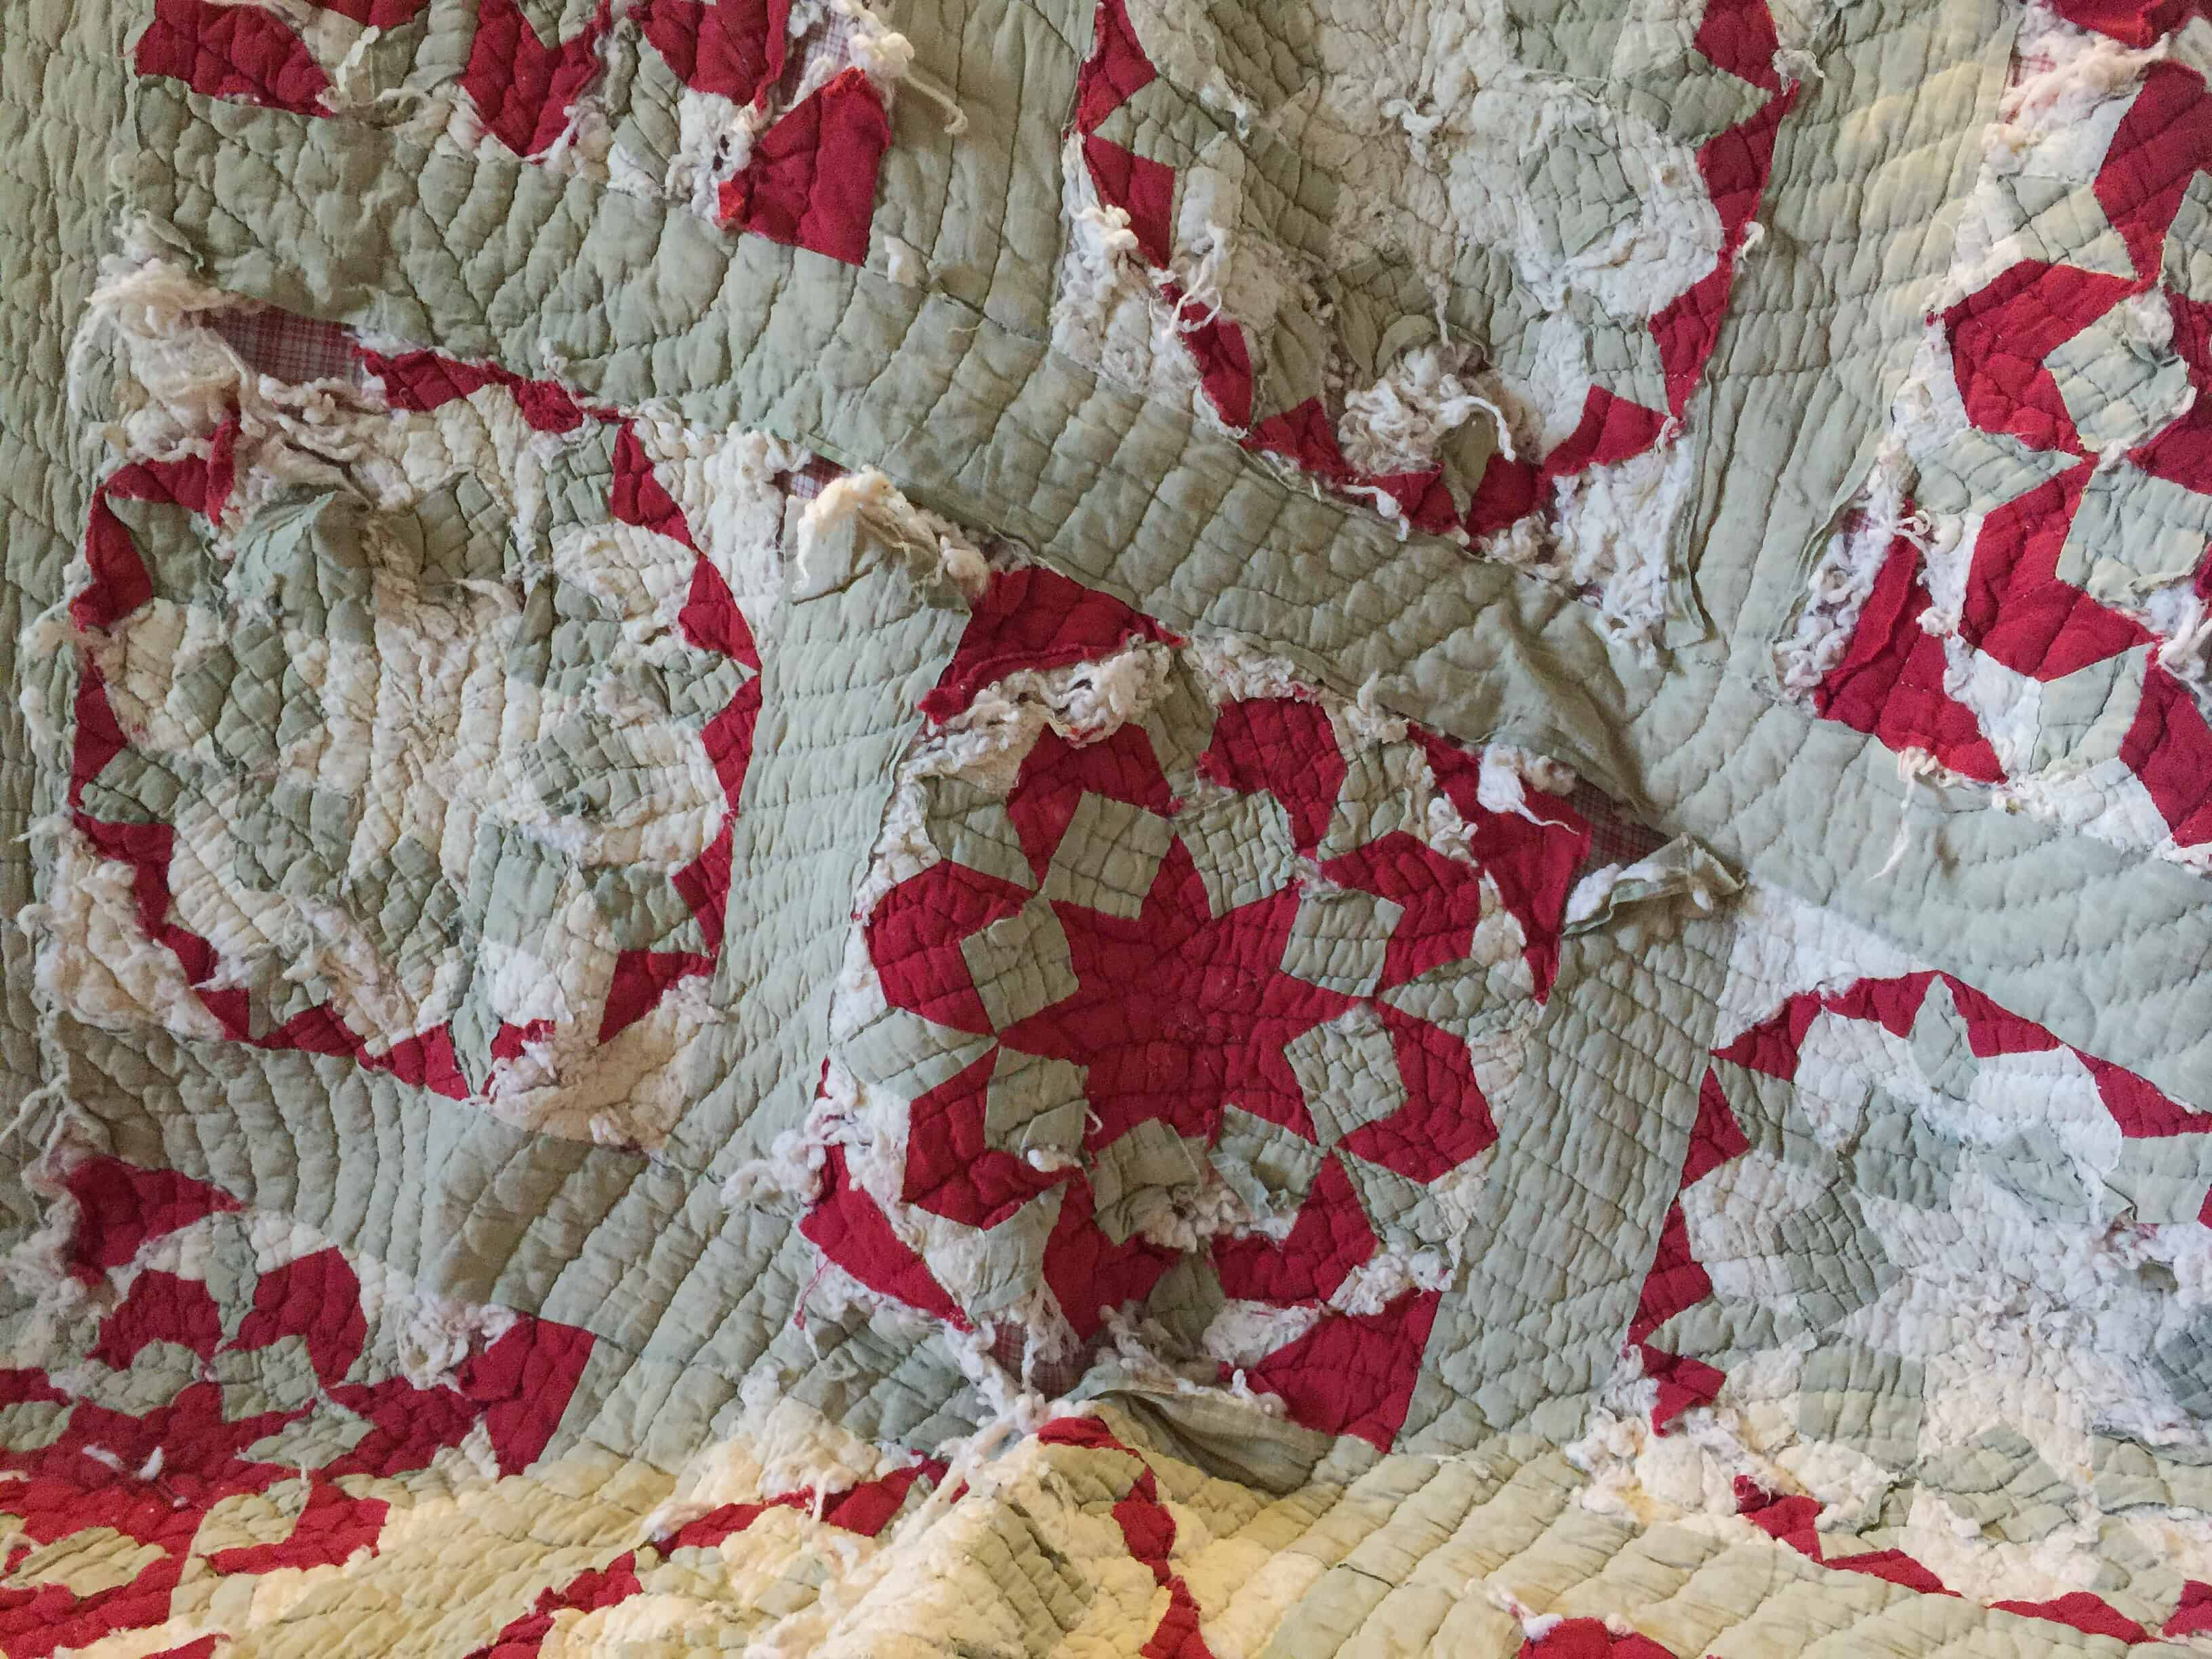 Making a swoon quilt we dont know how old this quilt is and we dont know if its even his grandmothers or his great grandmothers i wanted to repair it but ive been iffy solutioingenieria Gallery